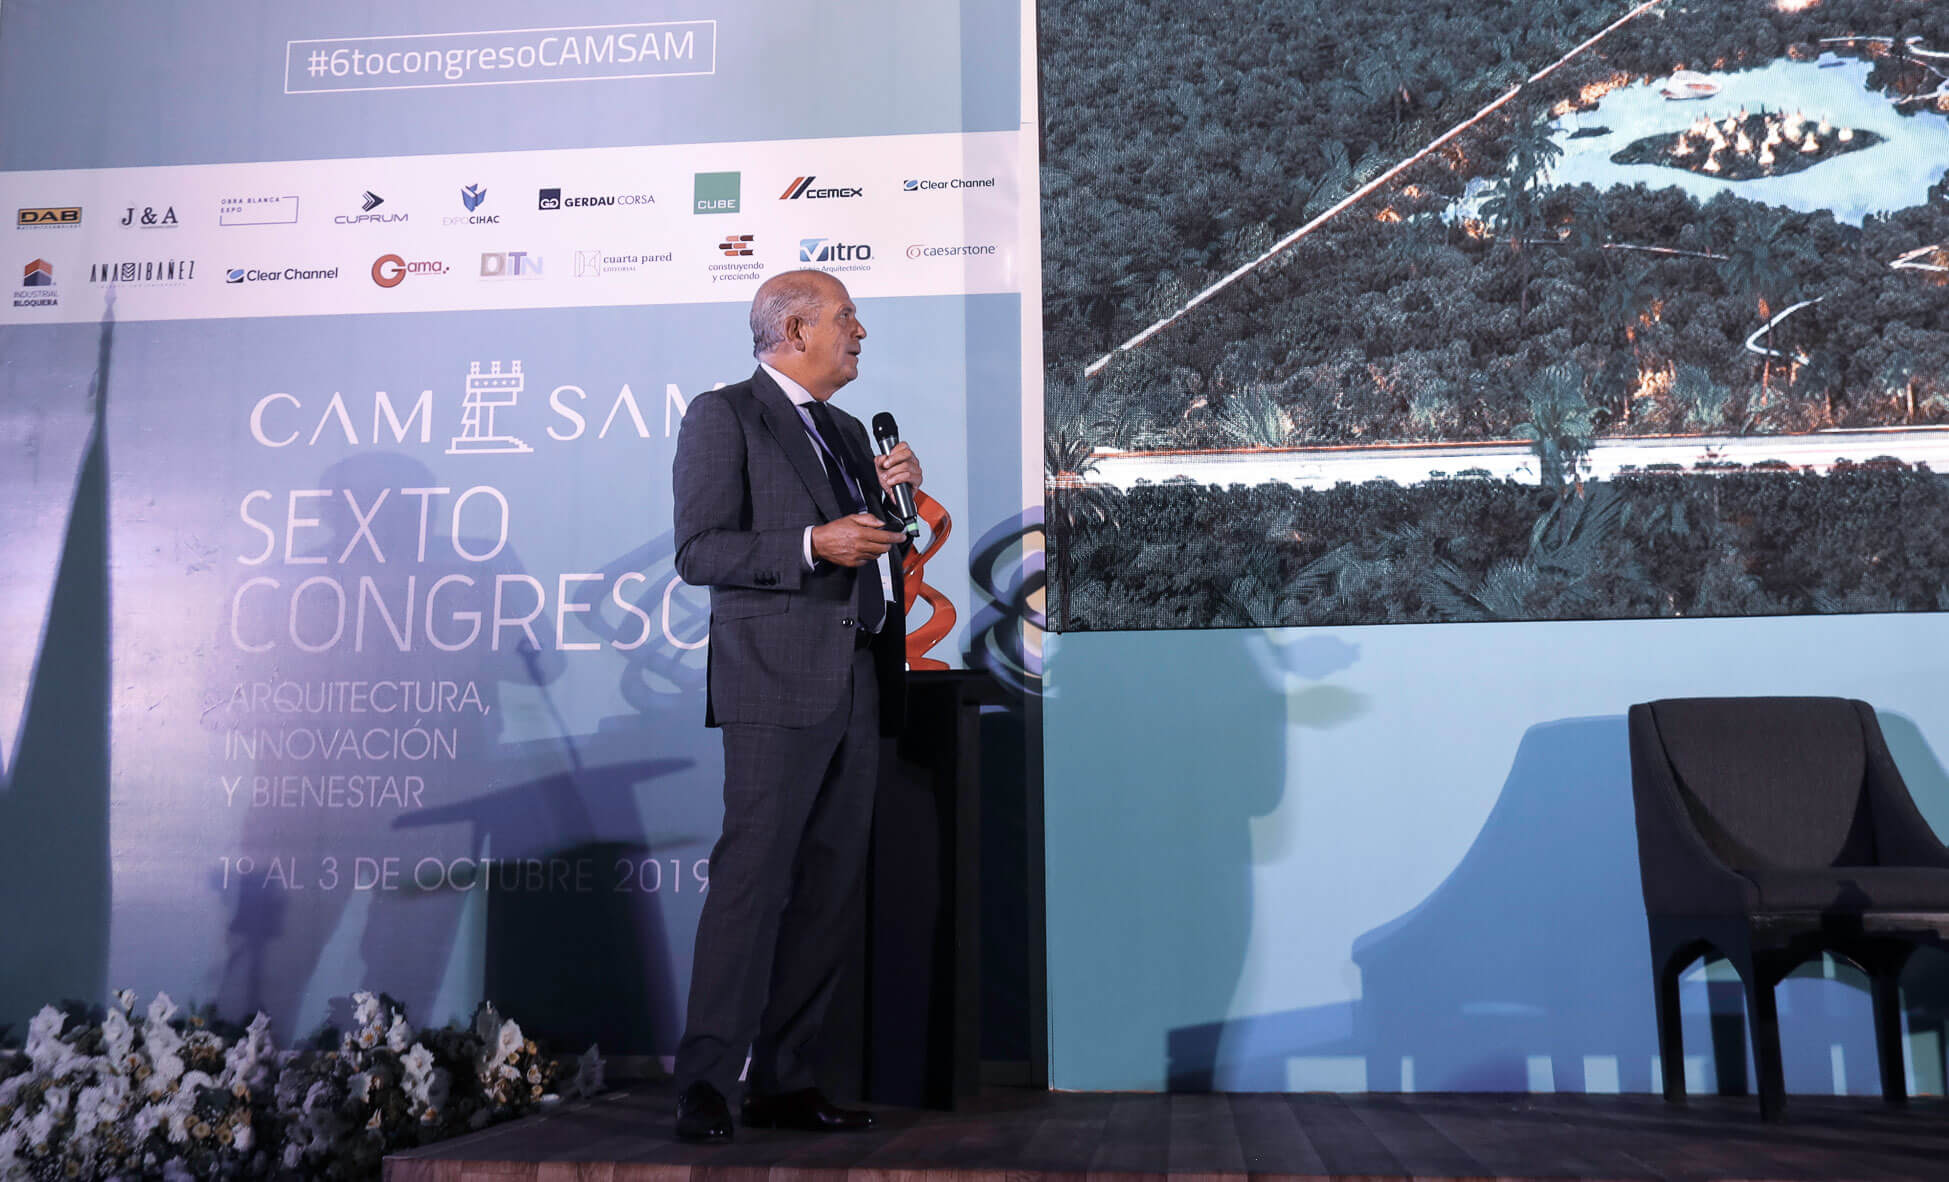 Javier Sordo Madaleno Bringas presents keynote at 6th CAM-SAM Congress